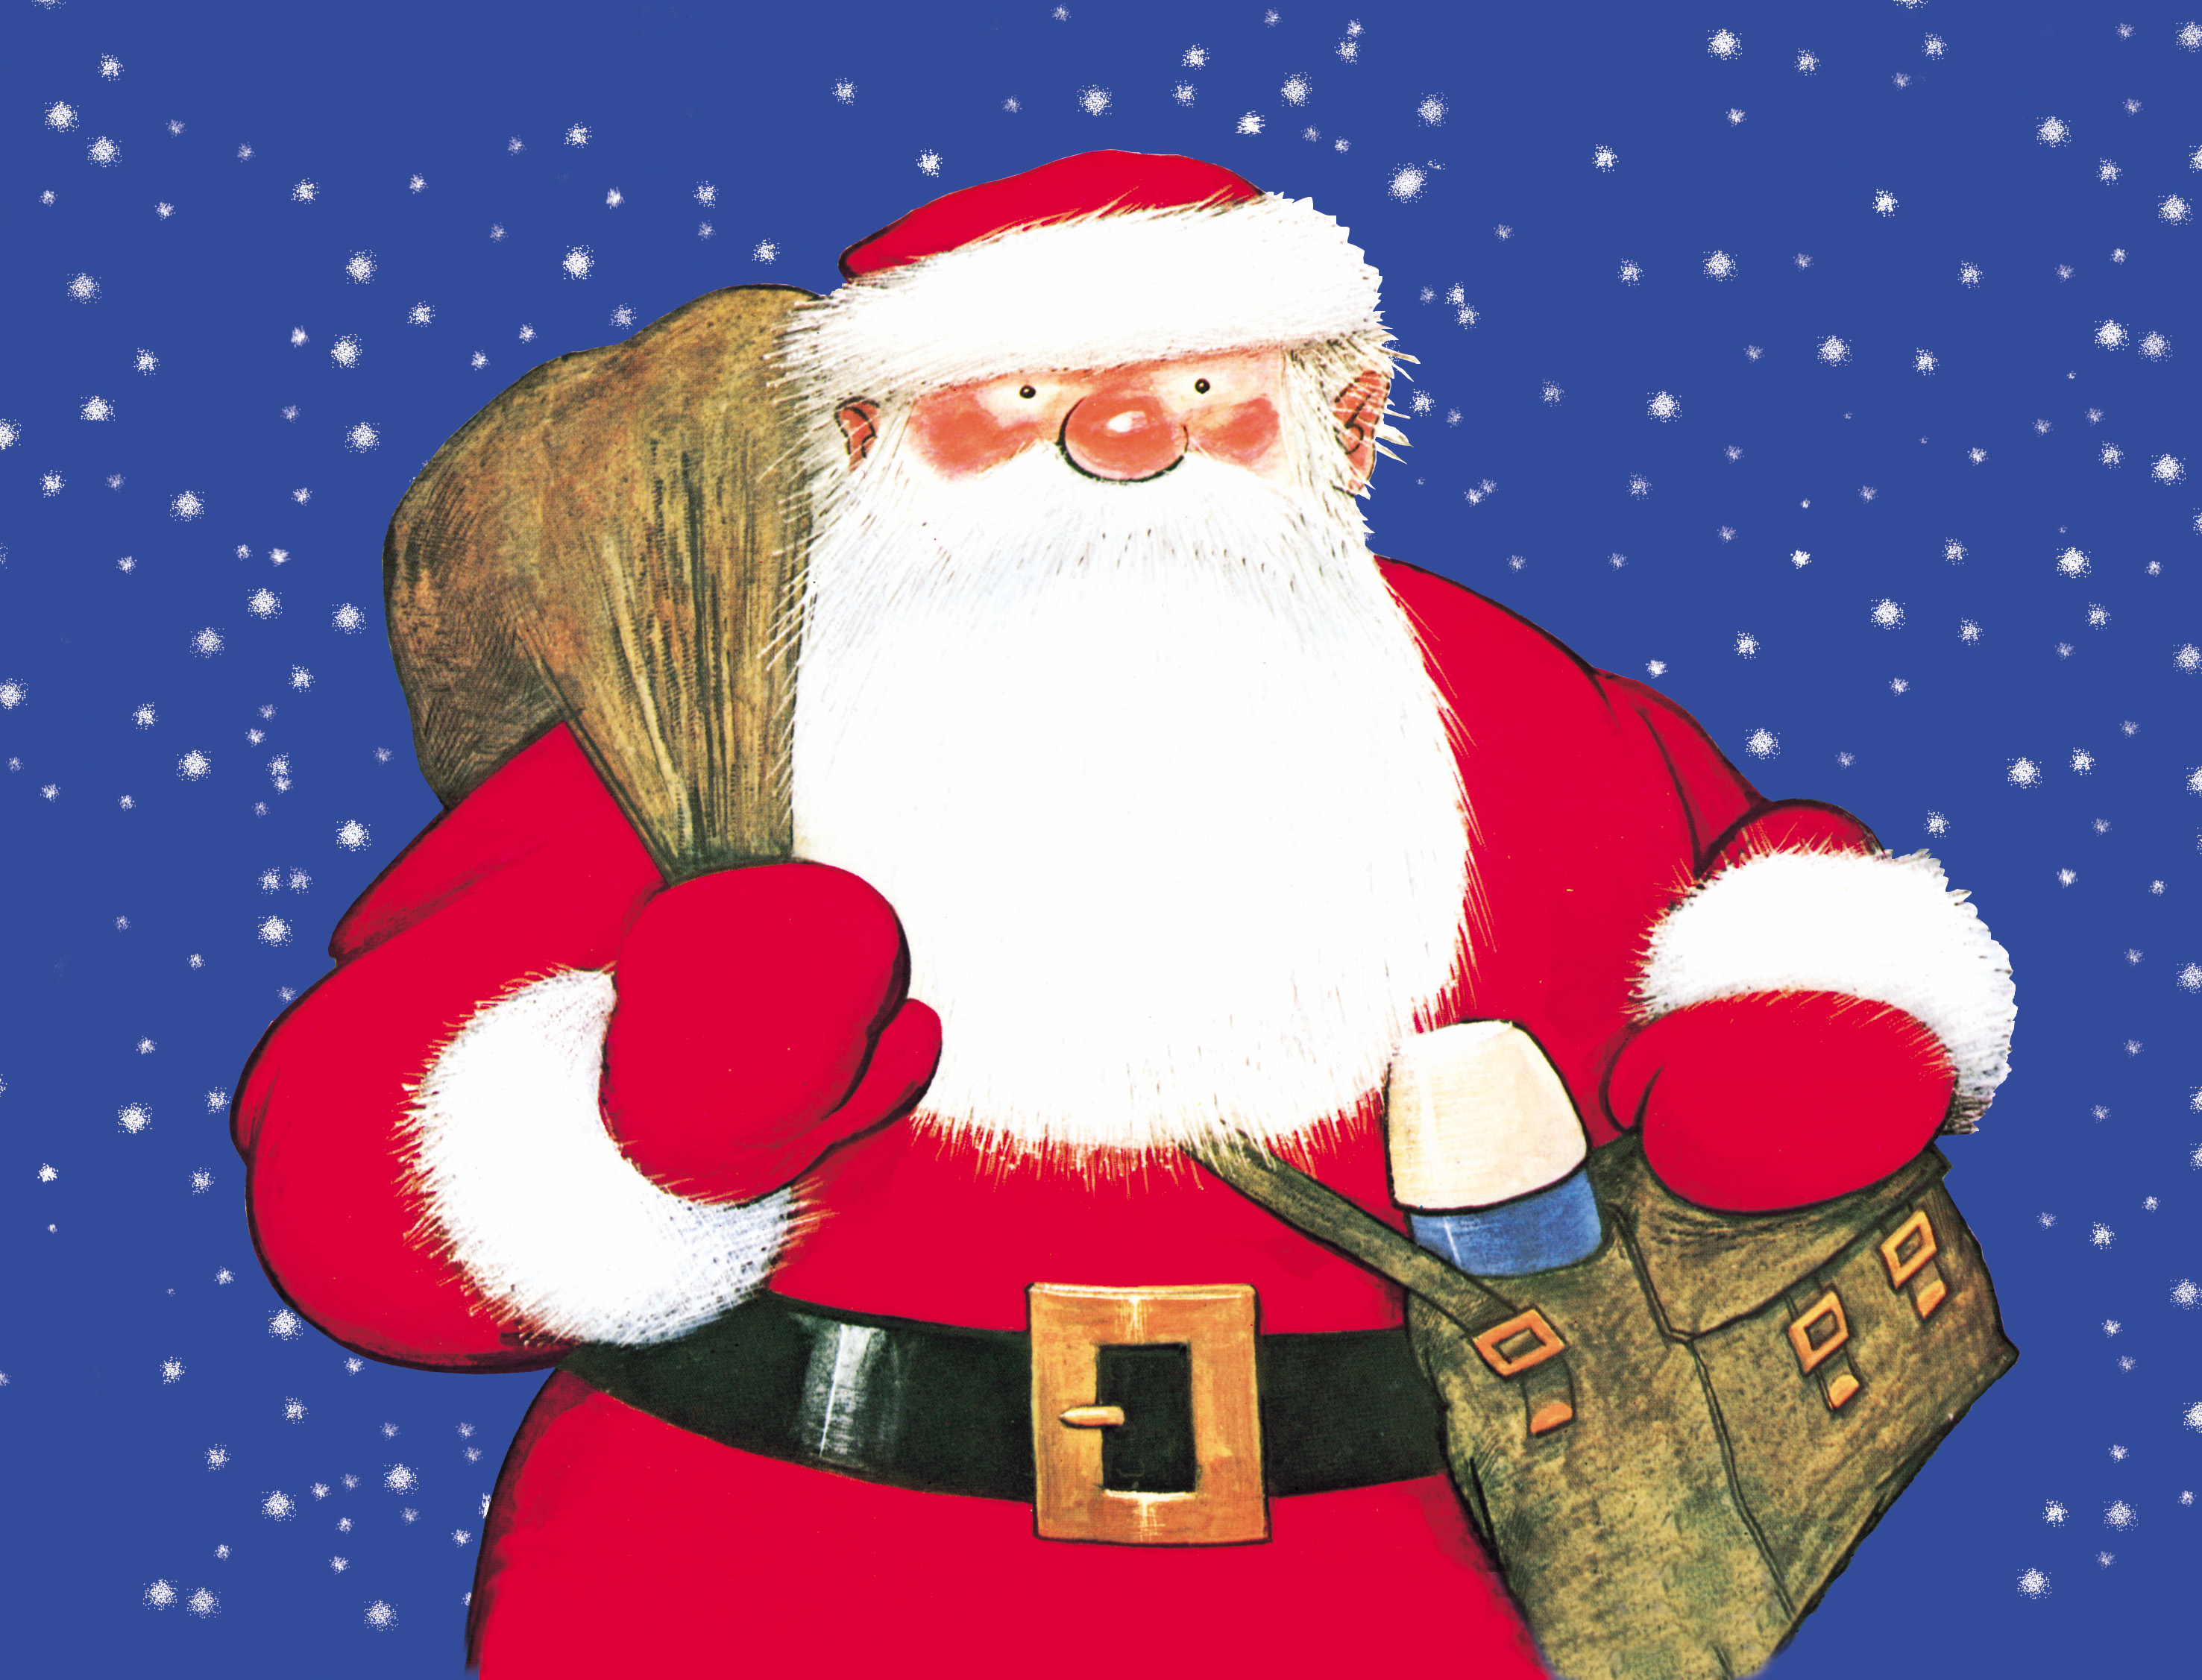 bbe6557cd8 Raymond Briggs  Father Christmas at Waterside - Creative Tourist